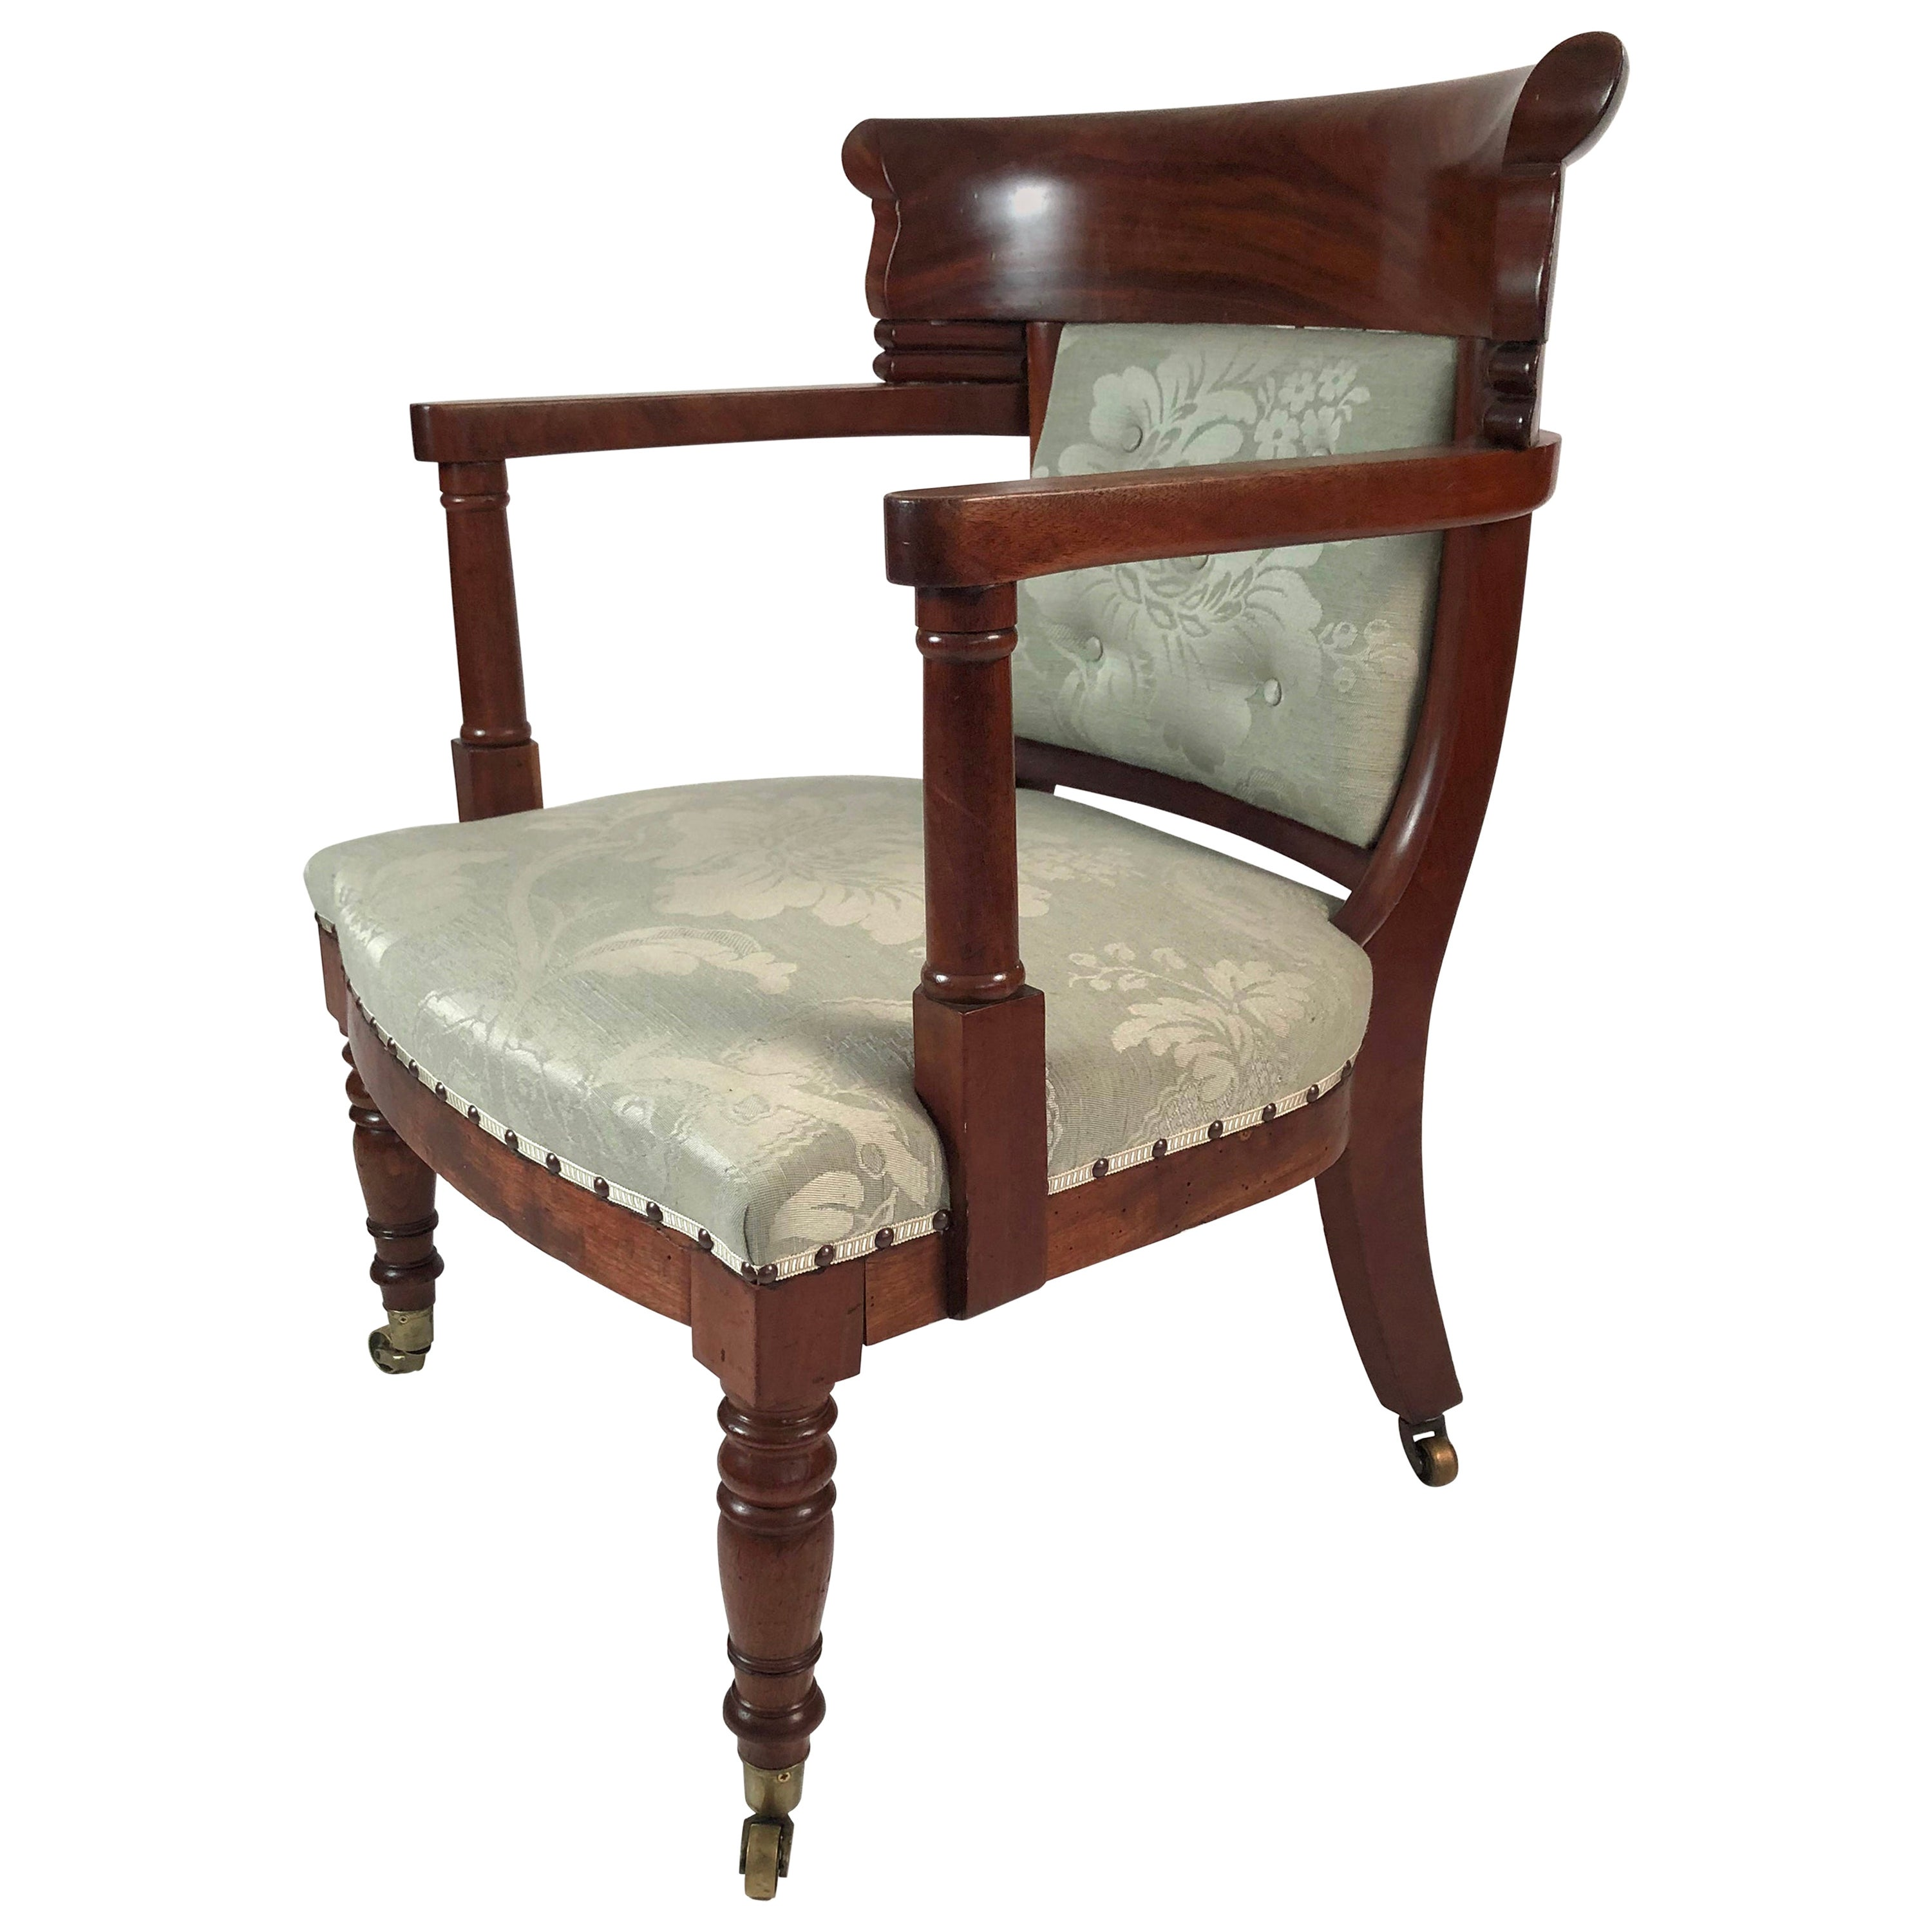 19th Century French Empire Neoclassical Armchair